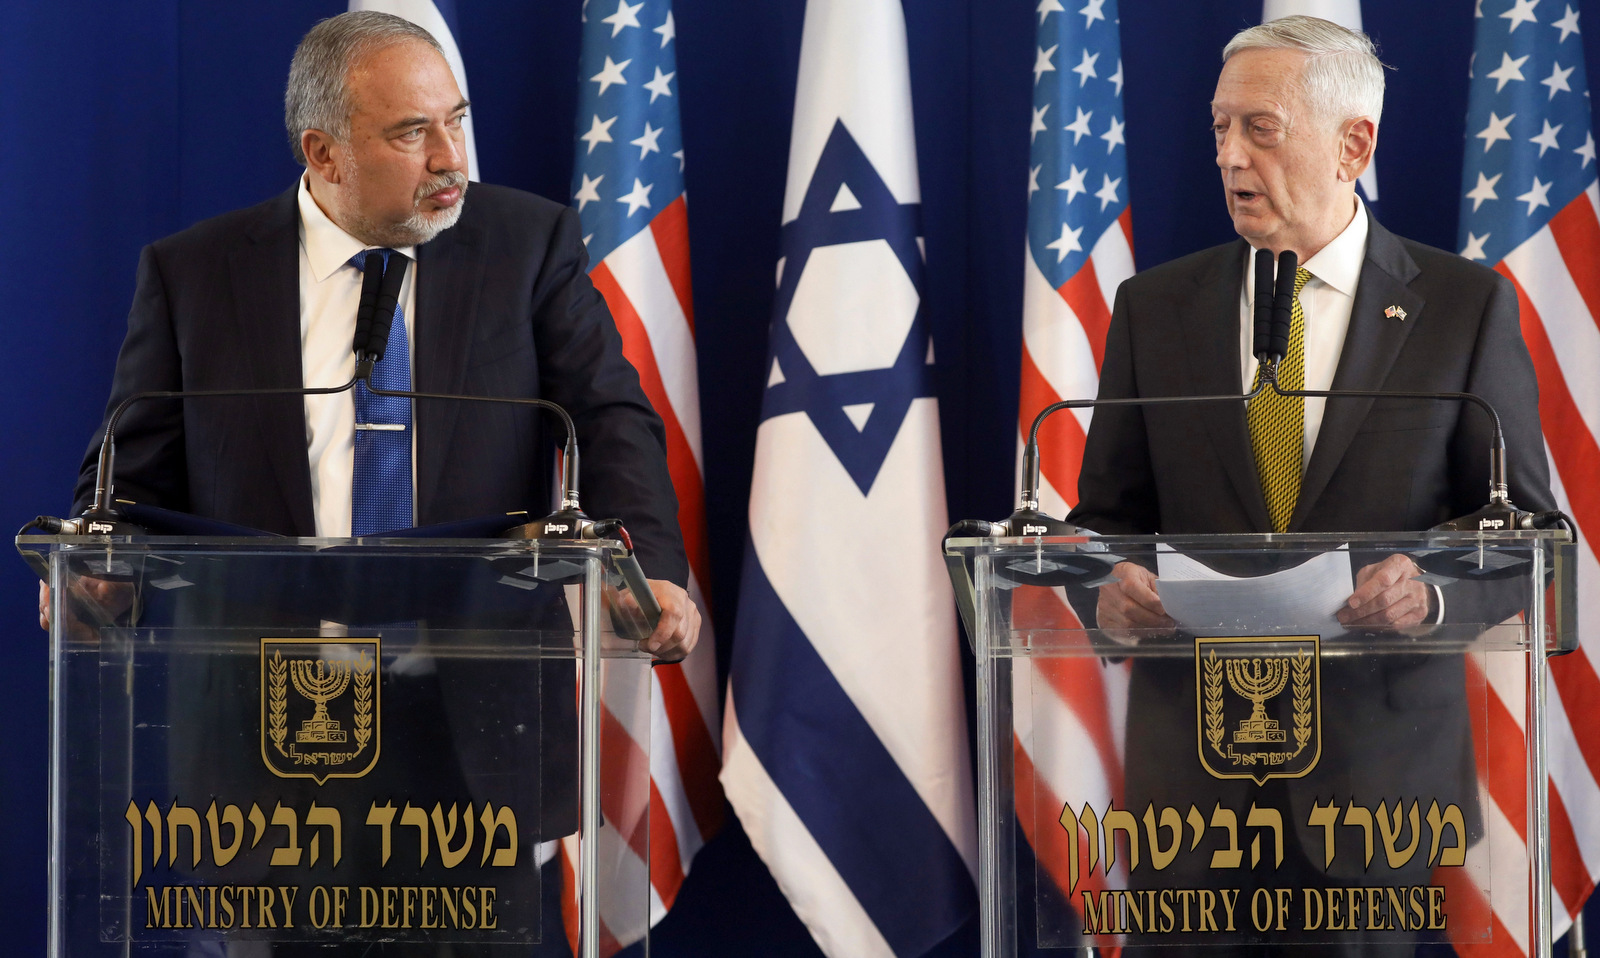 U.S. Defense Secretary Jim Mattis, right, and Israeli Defense Minister Avigdor Lieberman attend a joint press conference at the Defense Ministry in Tel Aviv, Israel, April 21, 2017. (Jonathan Ernst/AP)